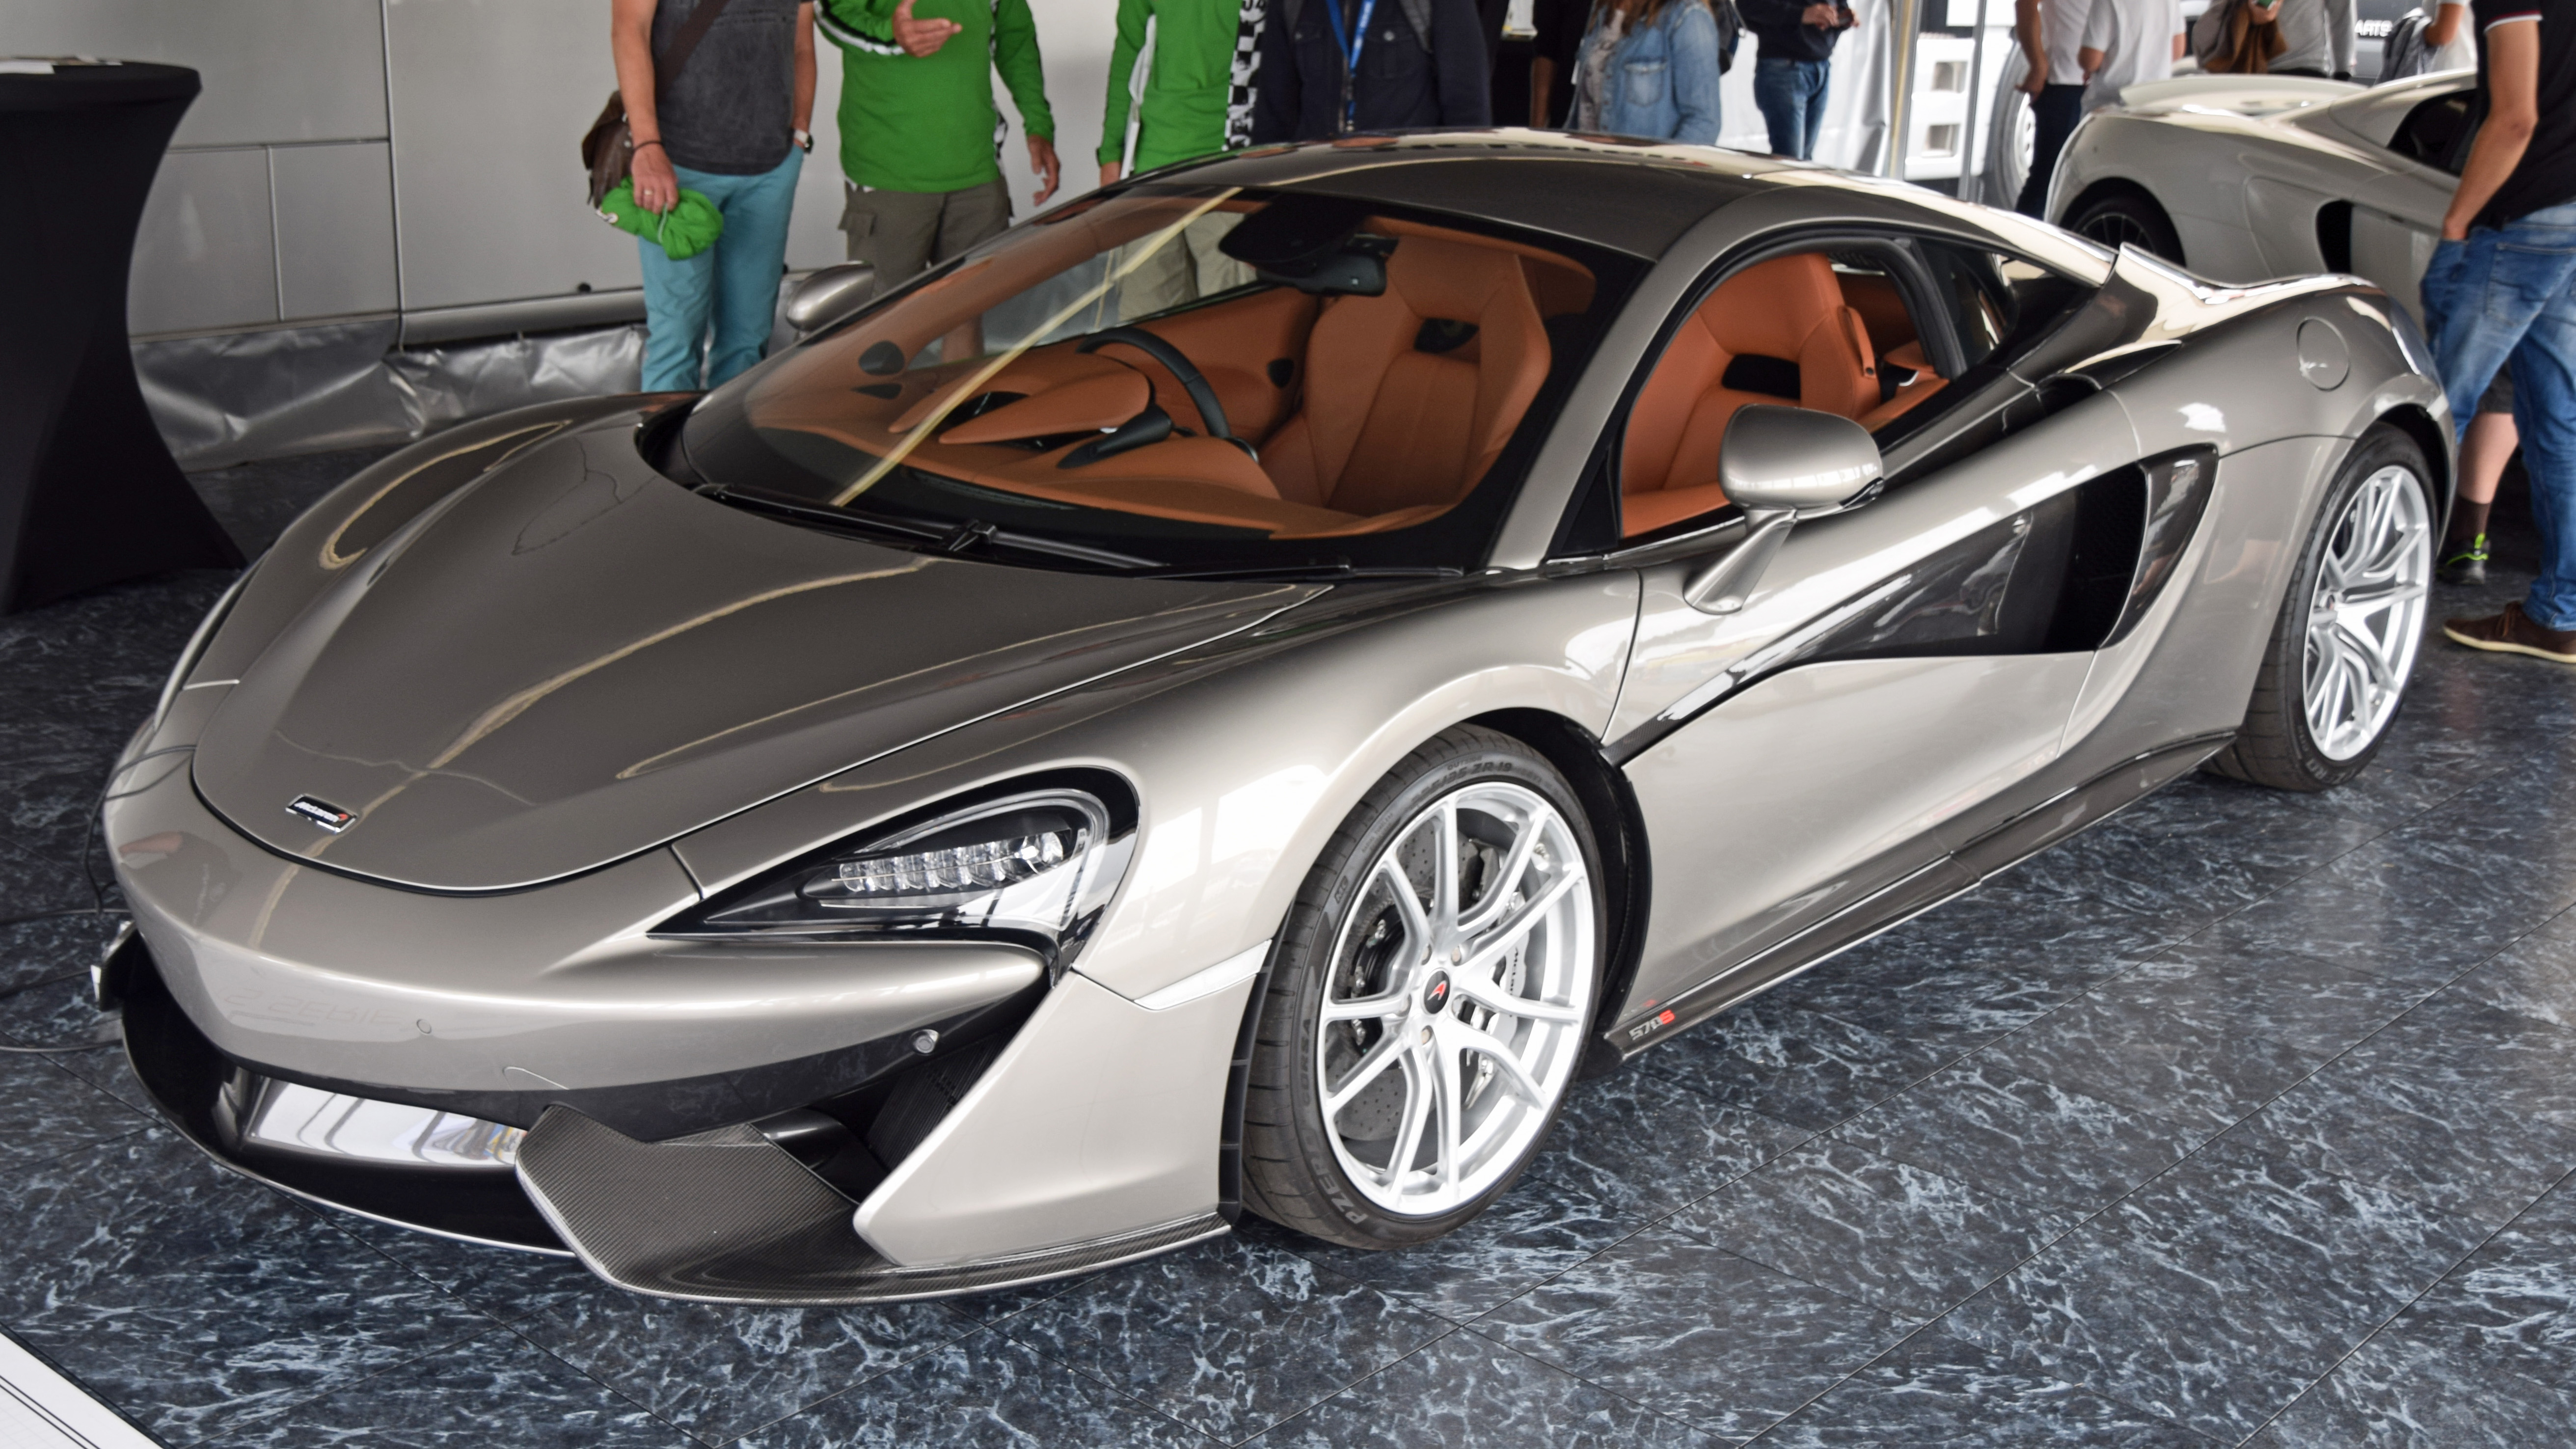 Deadmau5 Car Wallpaper Mclaren Automotive Wikiwand